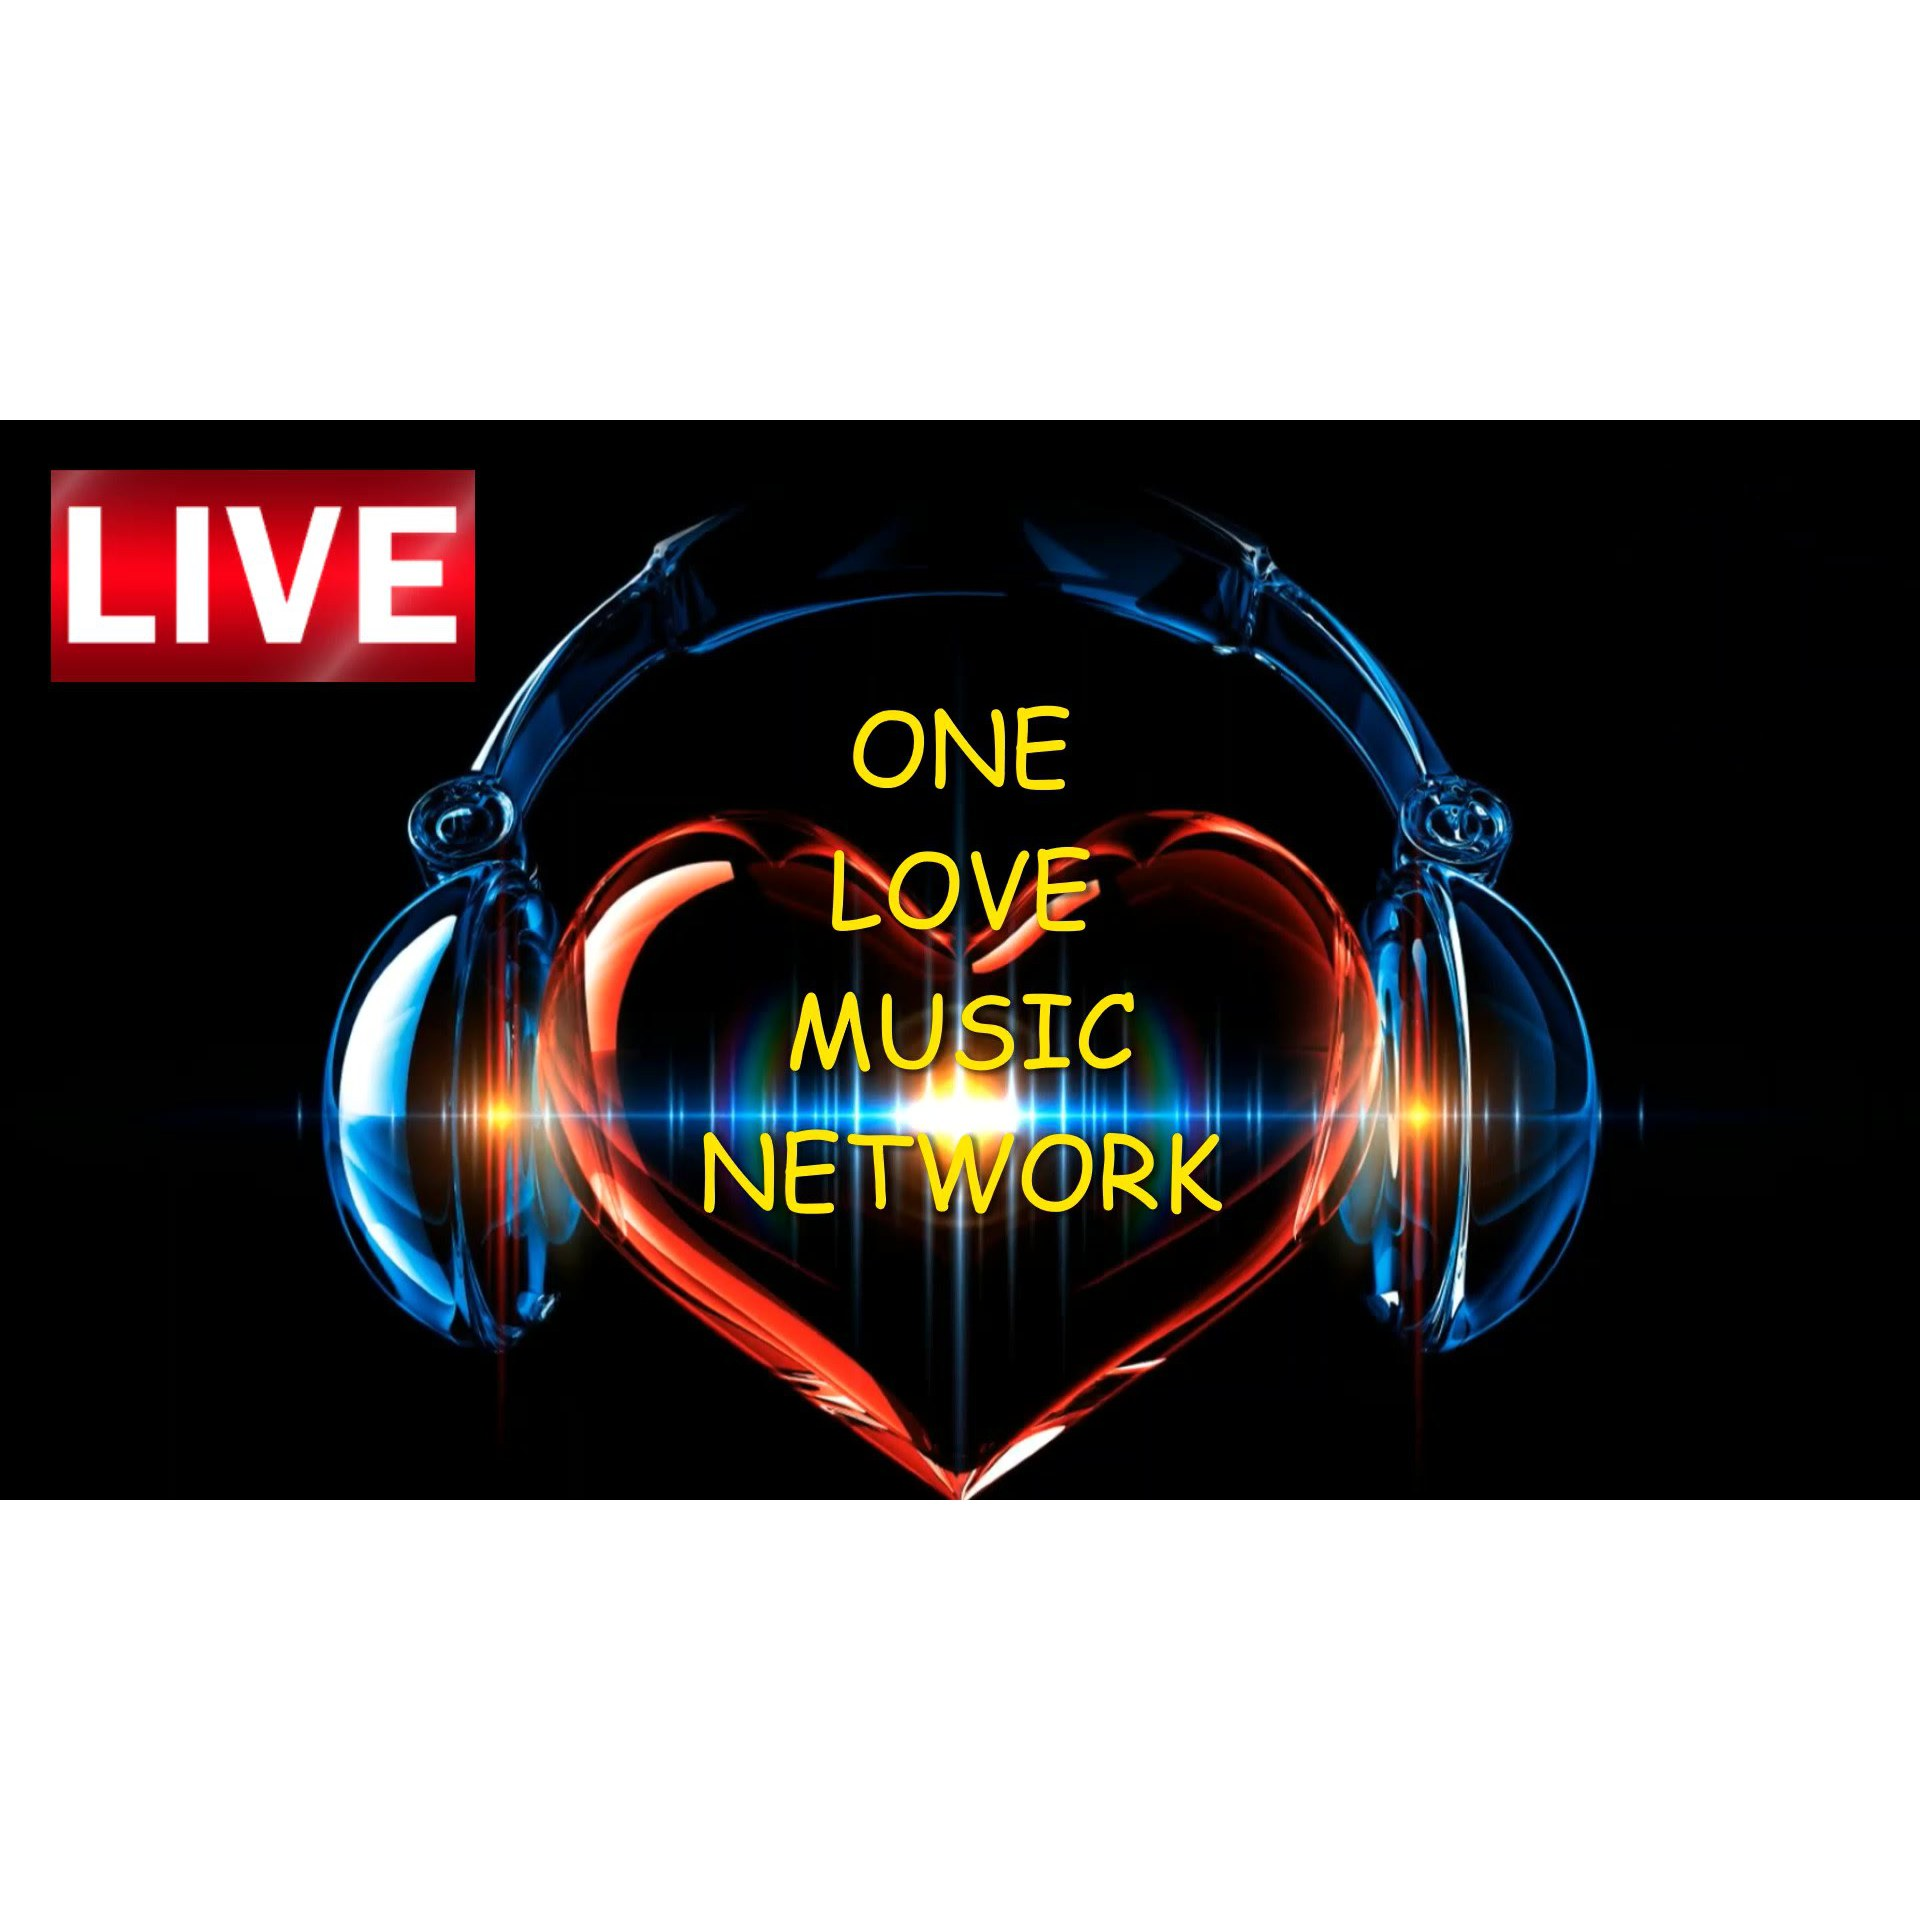 One Love Music Network